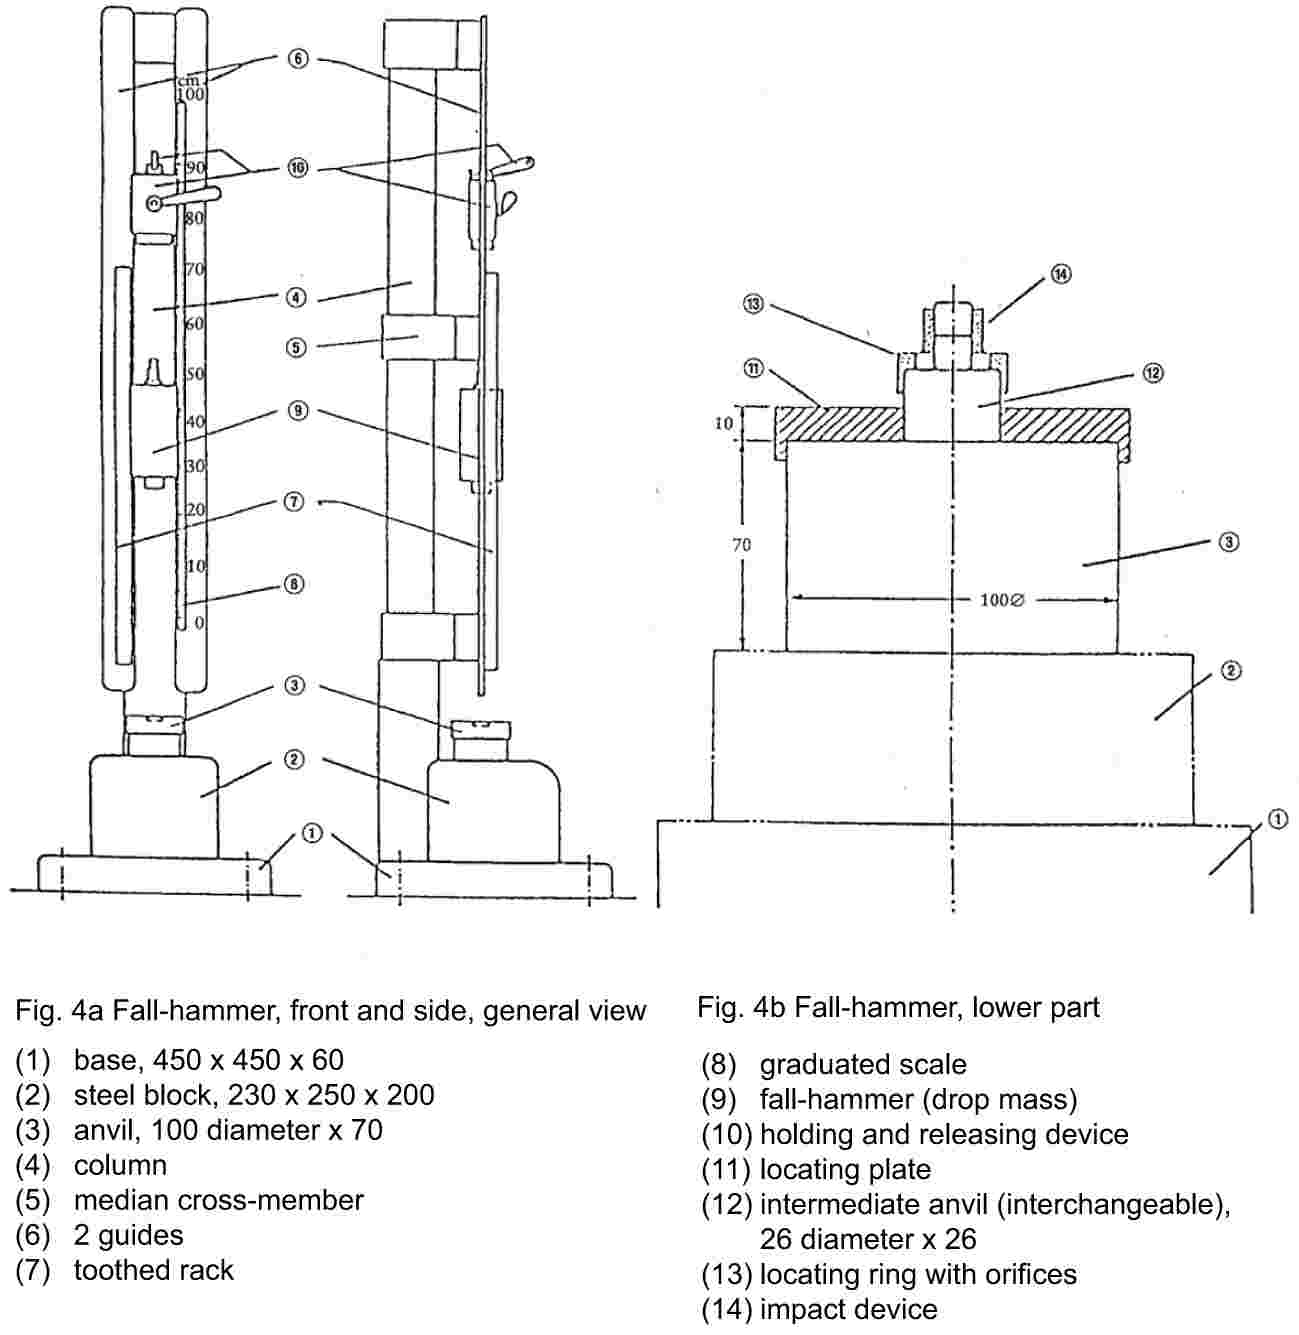 Fig. 4a Fall-hammer, front and side, general view(1) base, 450 x 450 x 60(2) steel block, 230 x 250 x 200(3) anvil, 100 diameter x 70(4) column(5) median cross-member(6) 2 guides(7) toothed rackFig. 4b Fall-hammer, lower part(8) graduated scale(9) fall-hammer (drop mass)(10) holding and releasing device(11) locating plate(12) intermediate anvil (interchangeable), 26 diameter x 26(13) locating ring with orifices(14) impact device